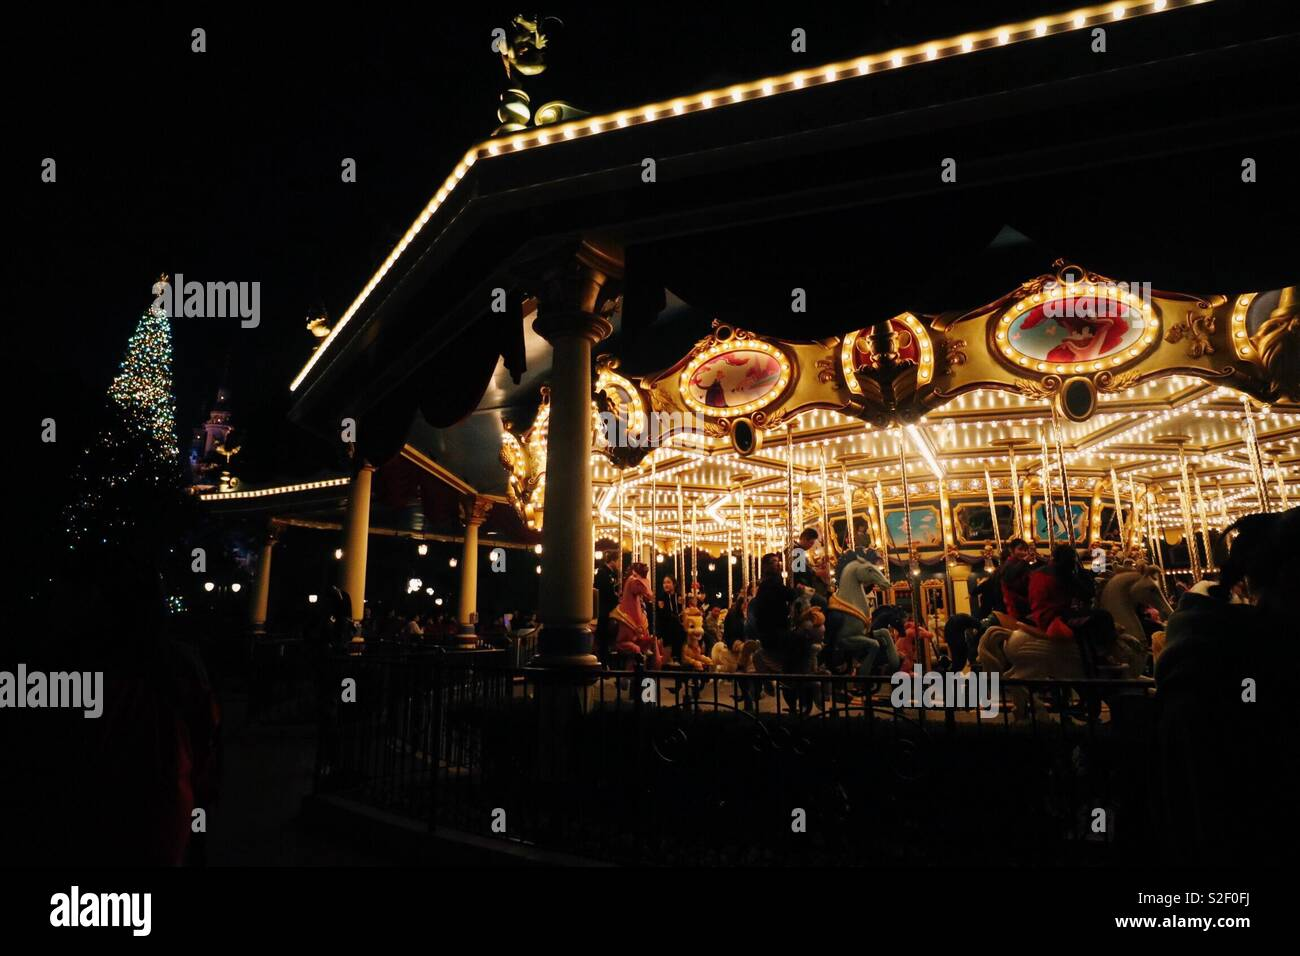 Carrousel at night - Stock Image